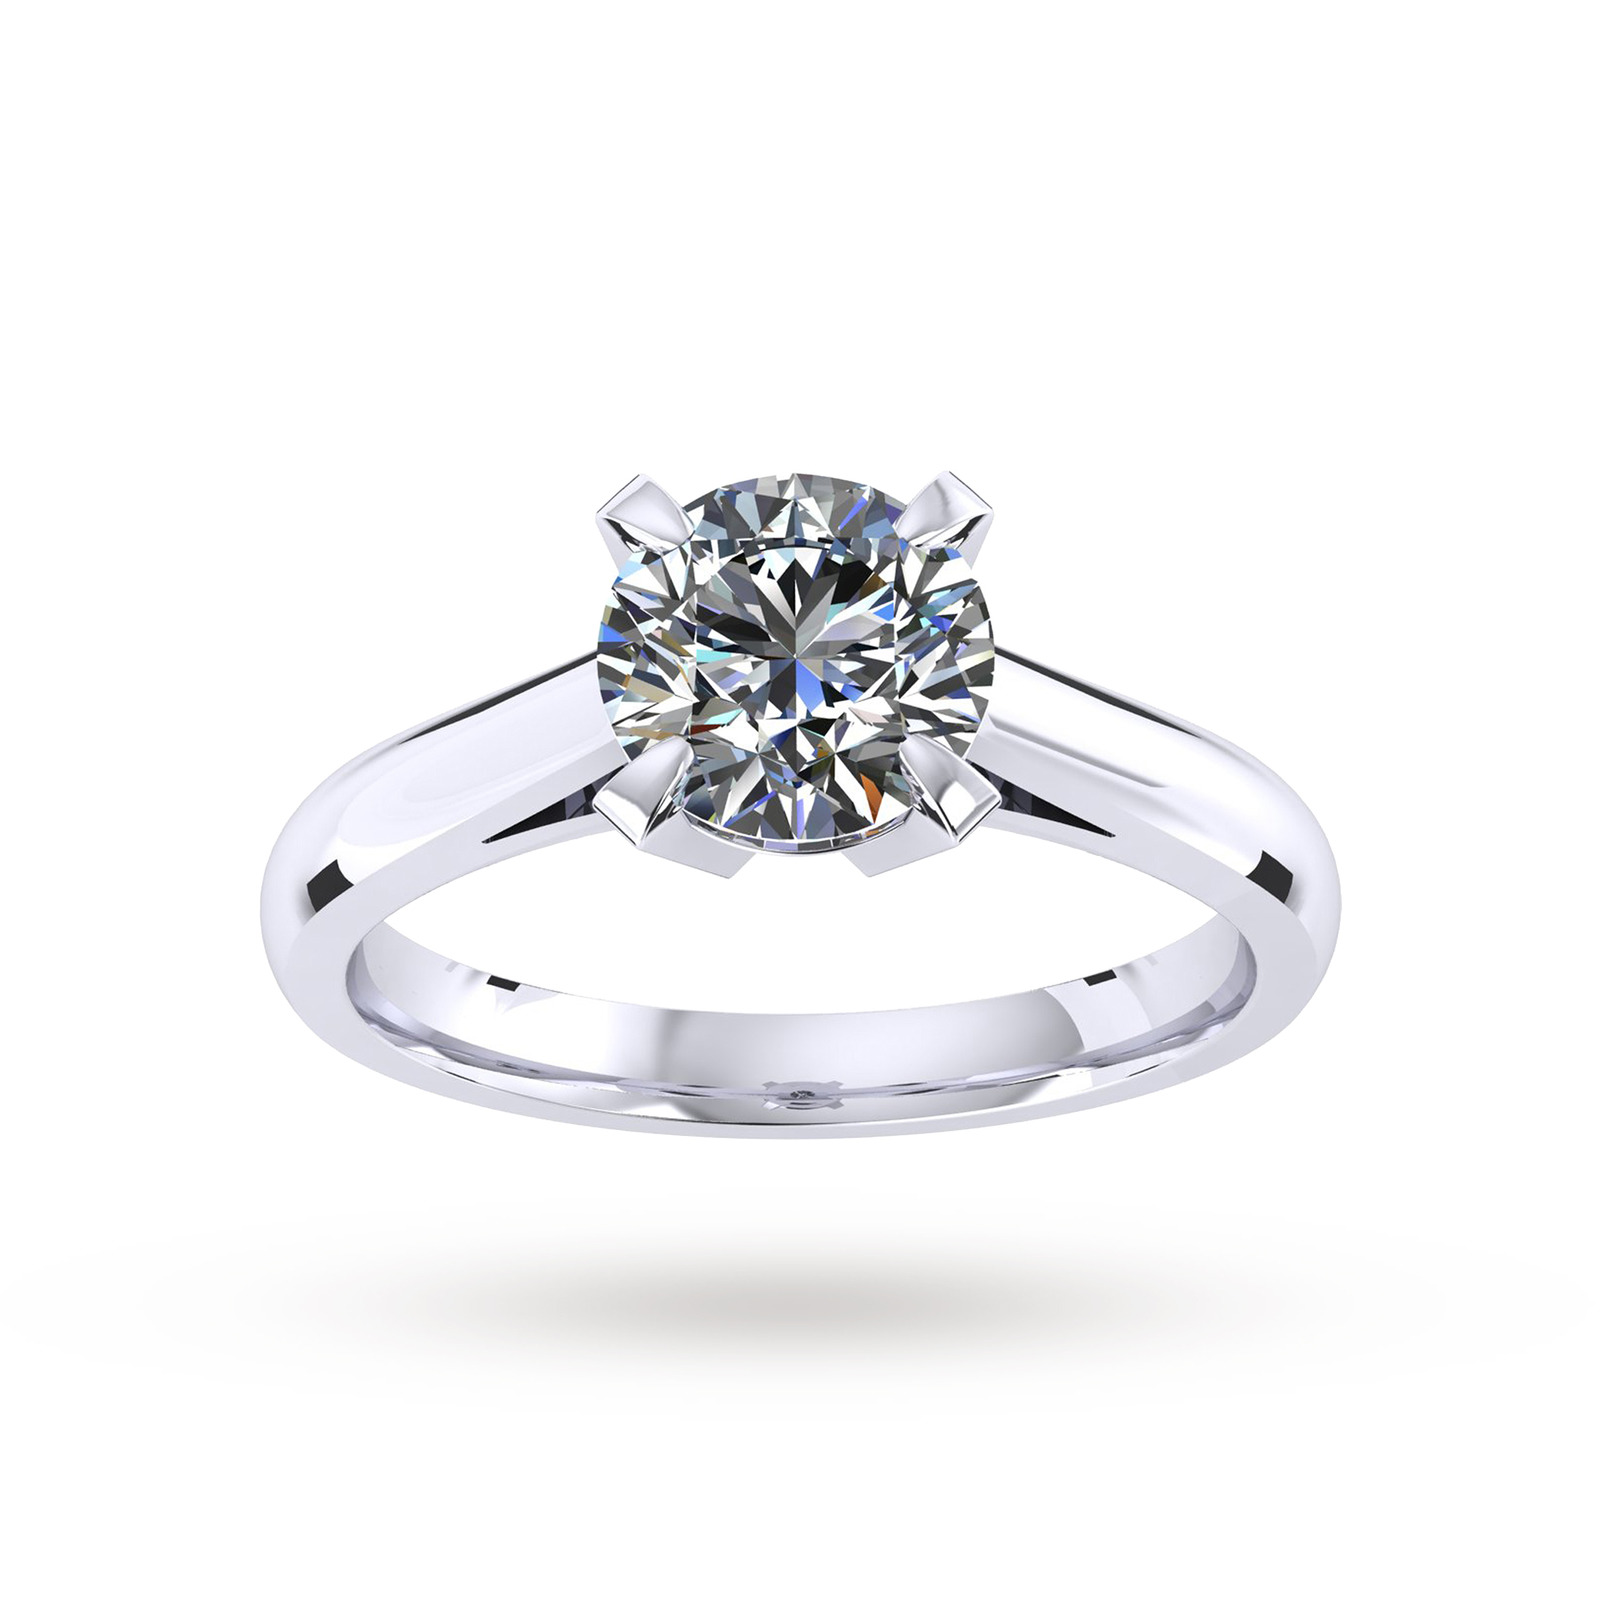 Belvedere Engagement Ring 0.25 Carat